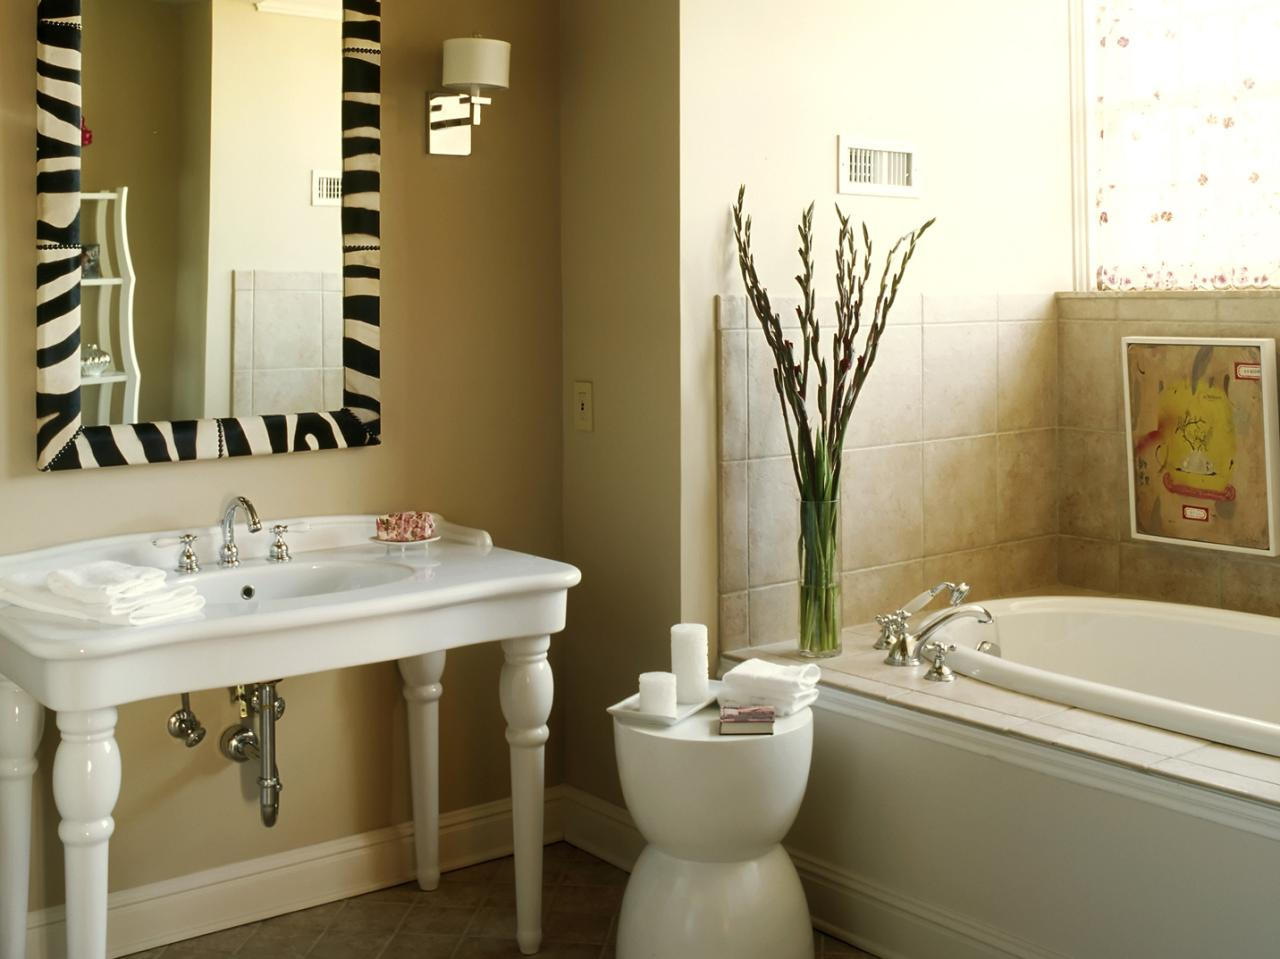 Traditional Bathroom Decorating Ideas traditional bathroom designs: pictures & ideas from hgtv | hgtv